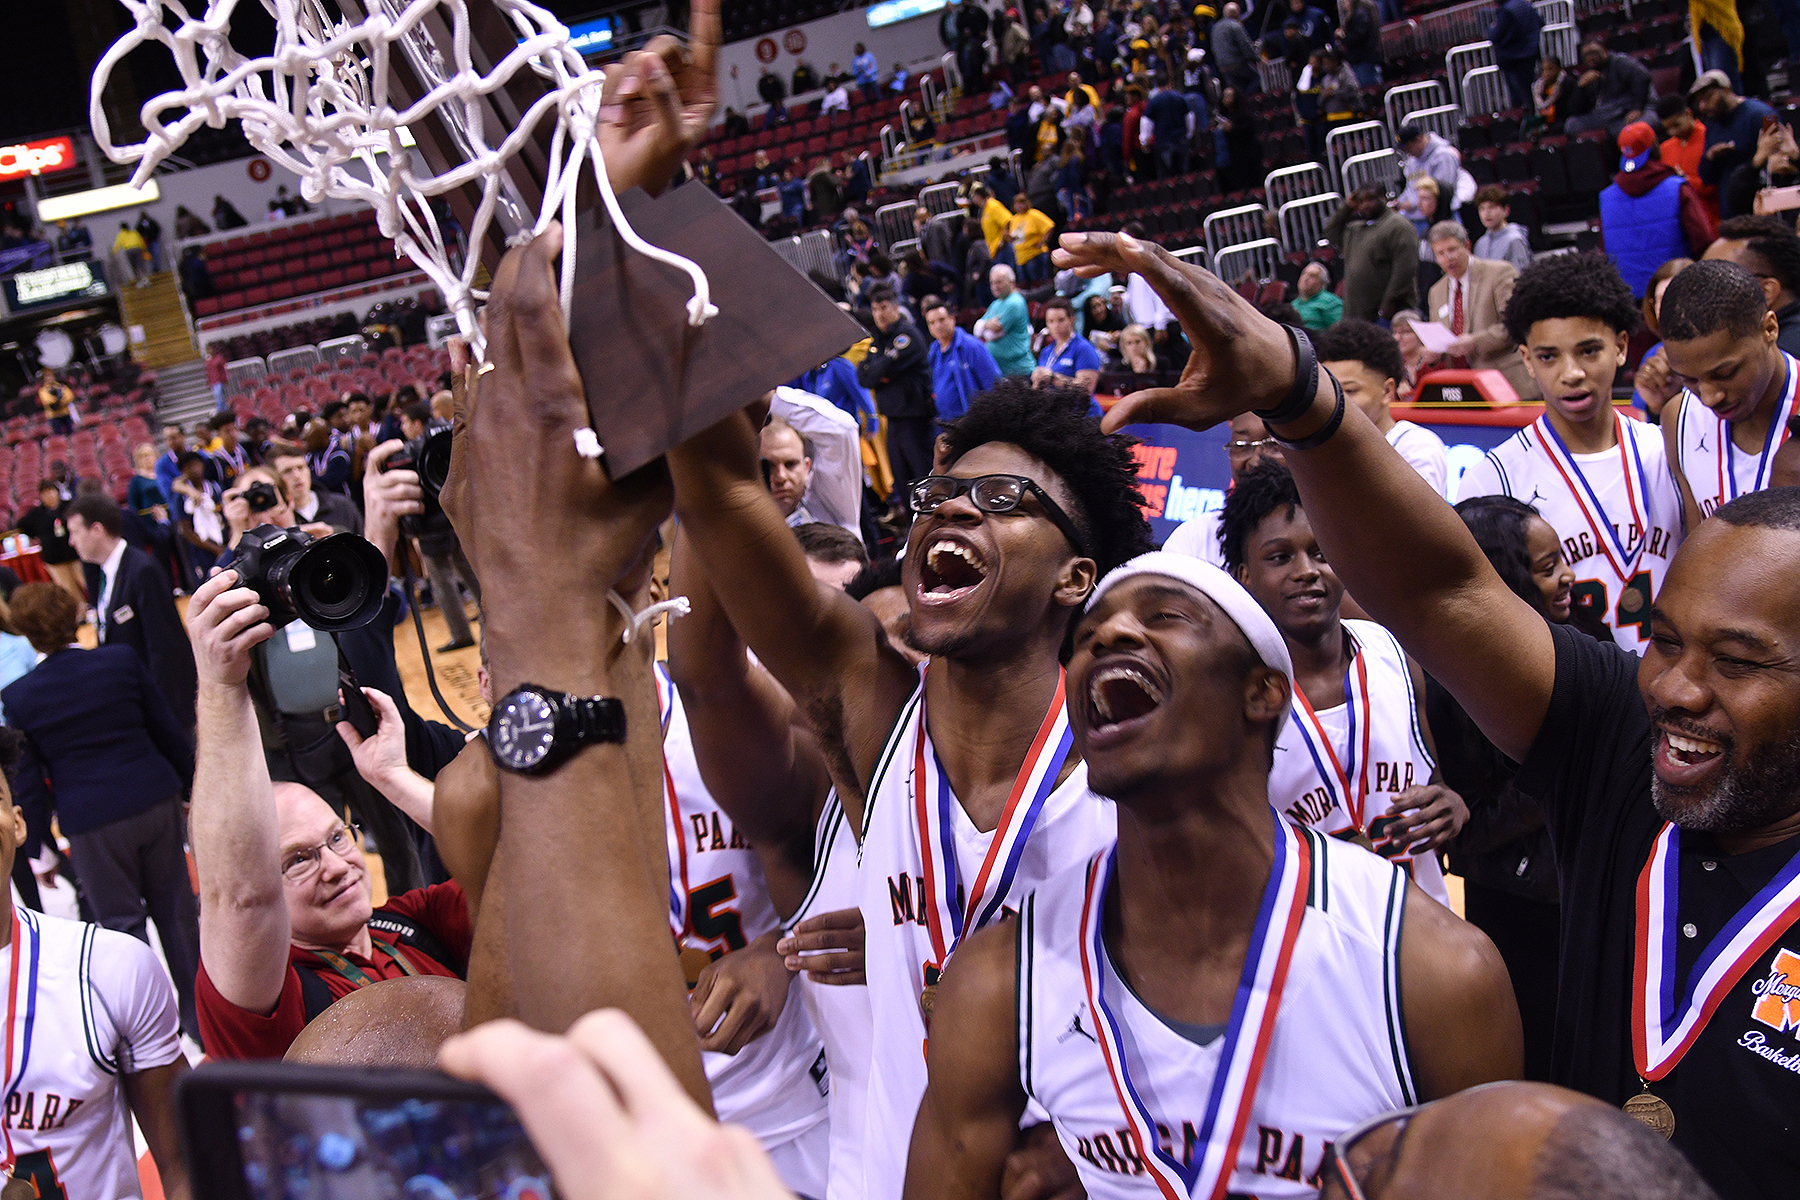 Morgan Park celebrates winning the Class 3A state title in 2018.